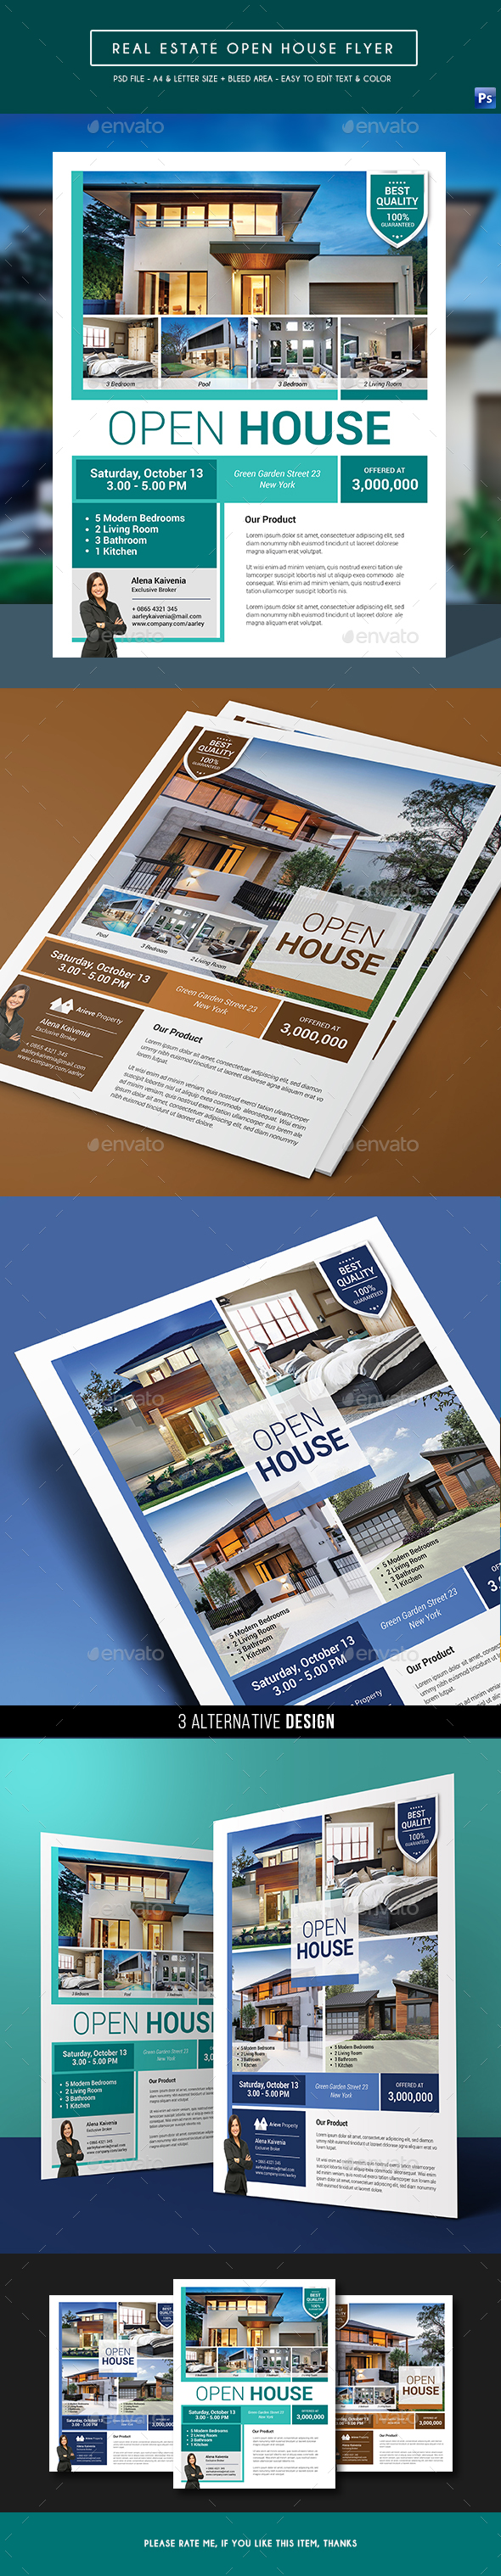 GraphicRiver Real Estate Open House Flyer 20950458